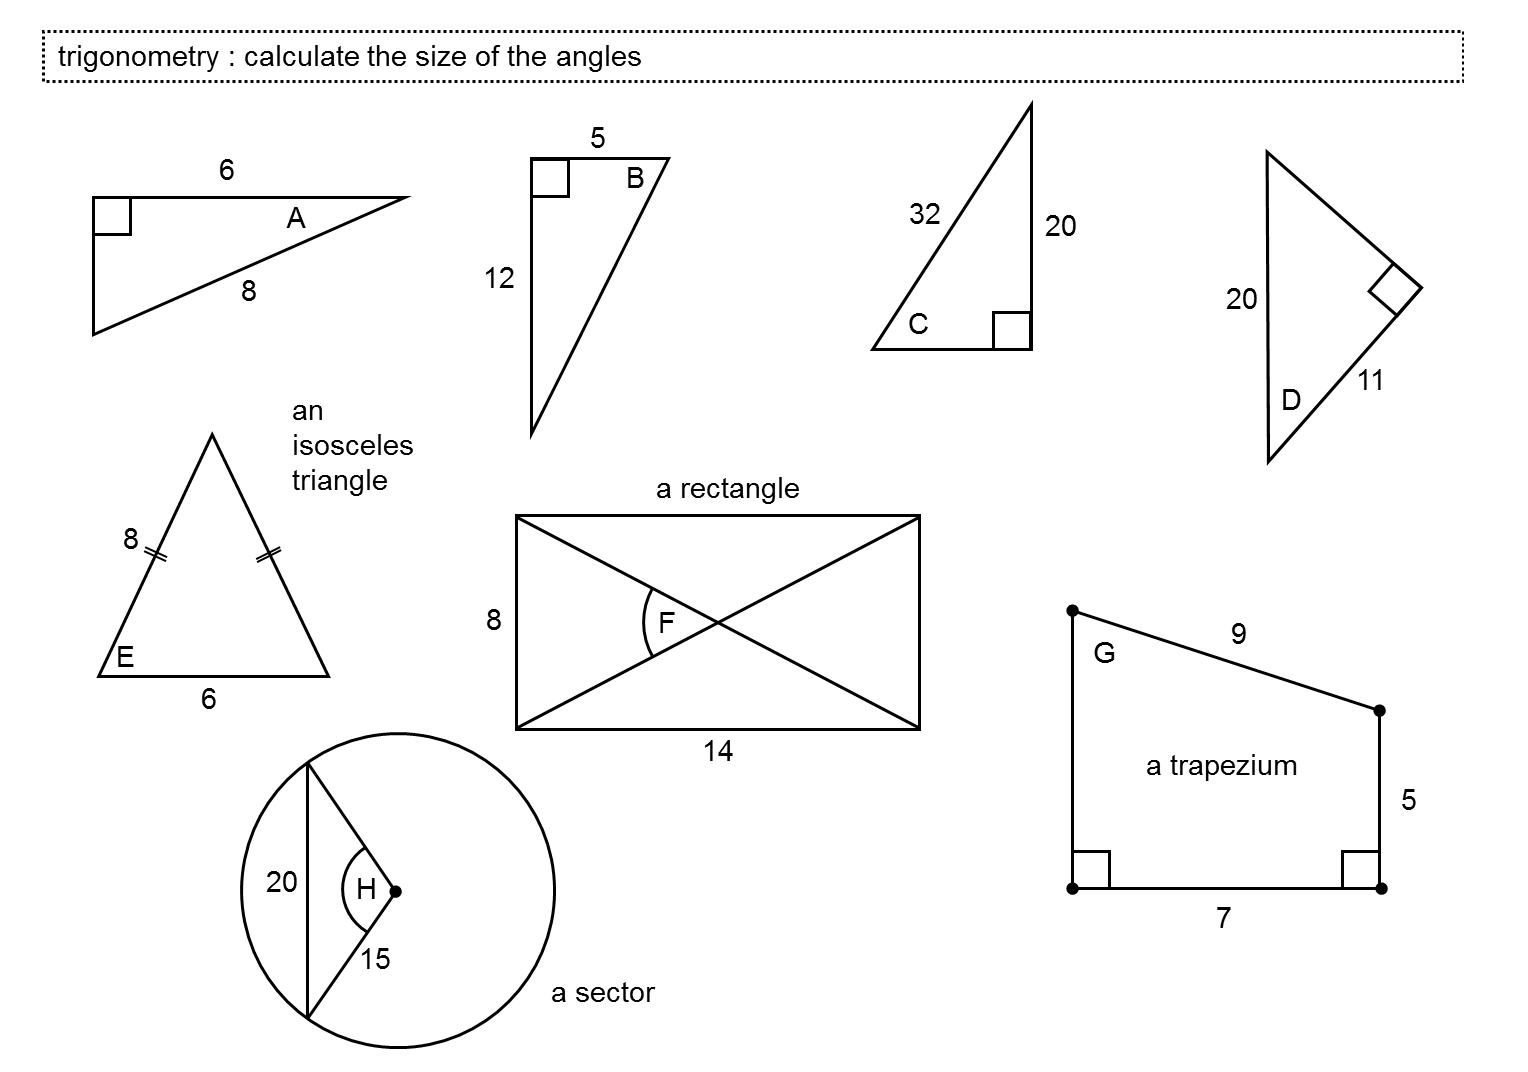 Worksheet Trigonometry Worksheet trigonometry in right angled triangles miss norledges storeroom calculate angle size don steward